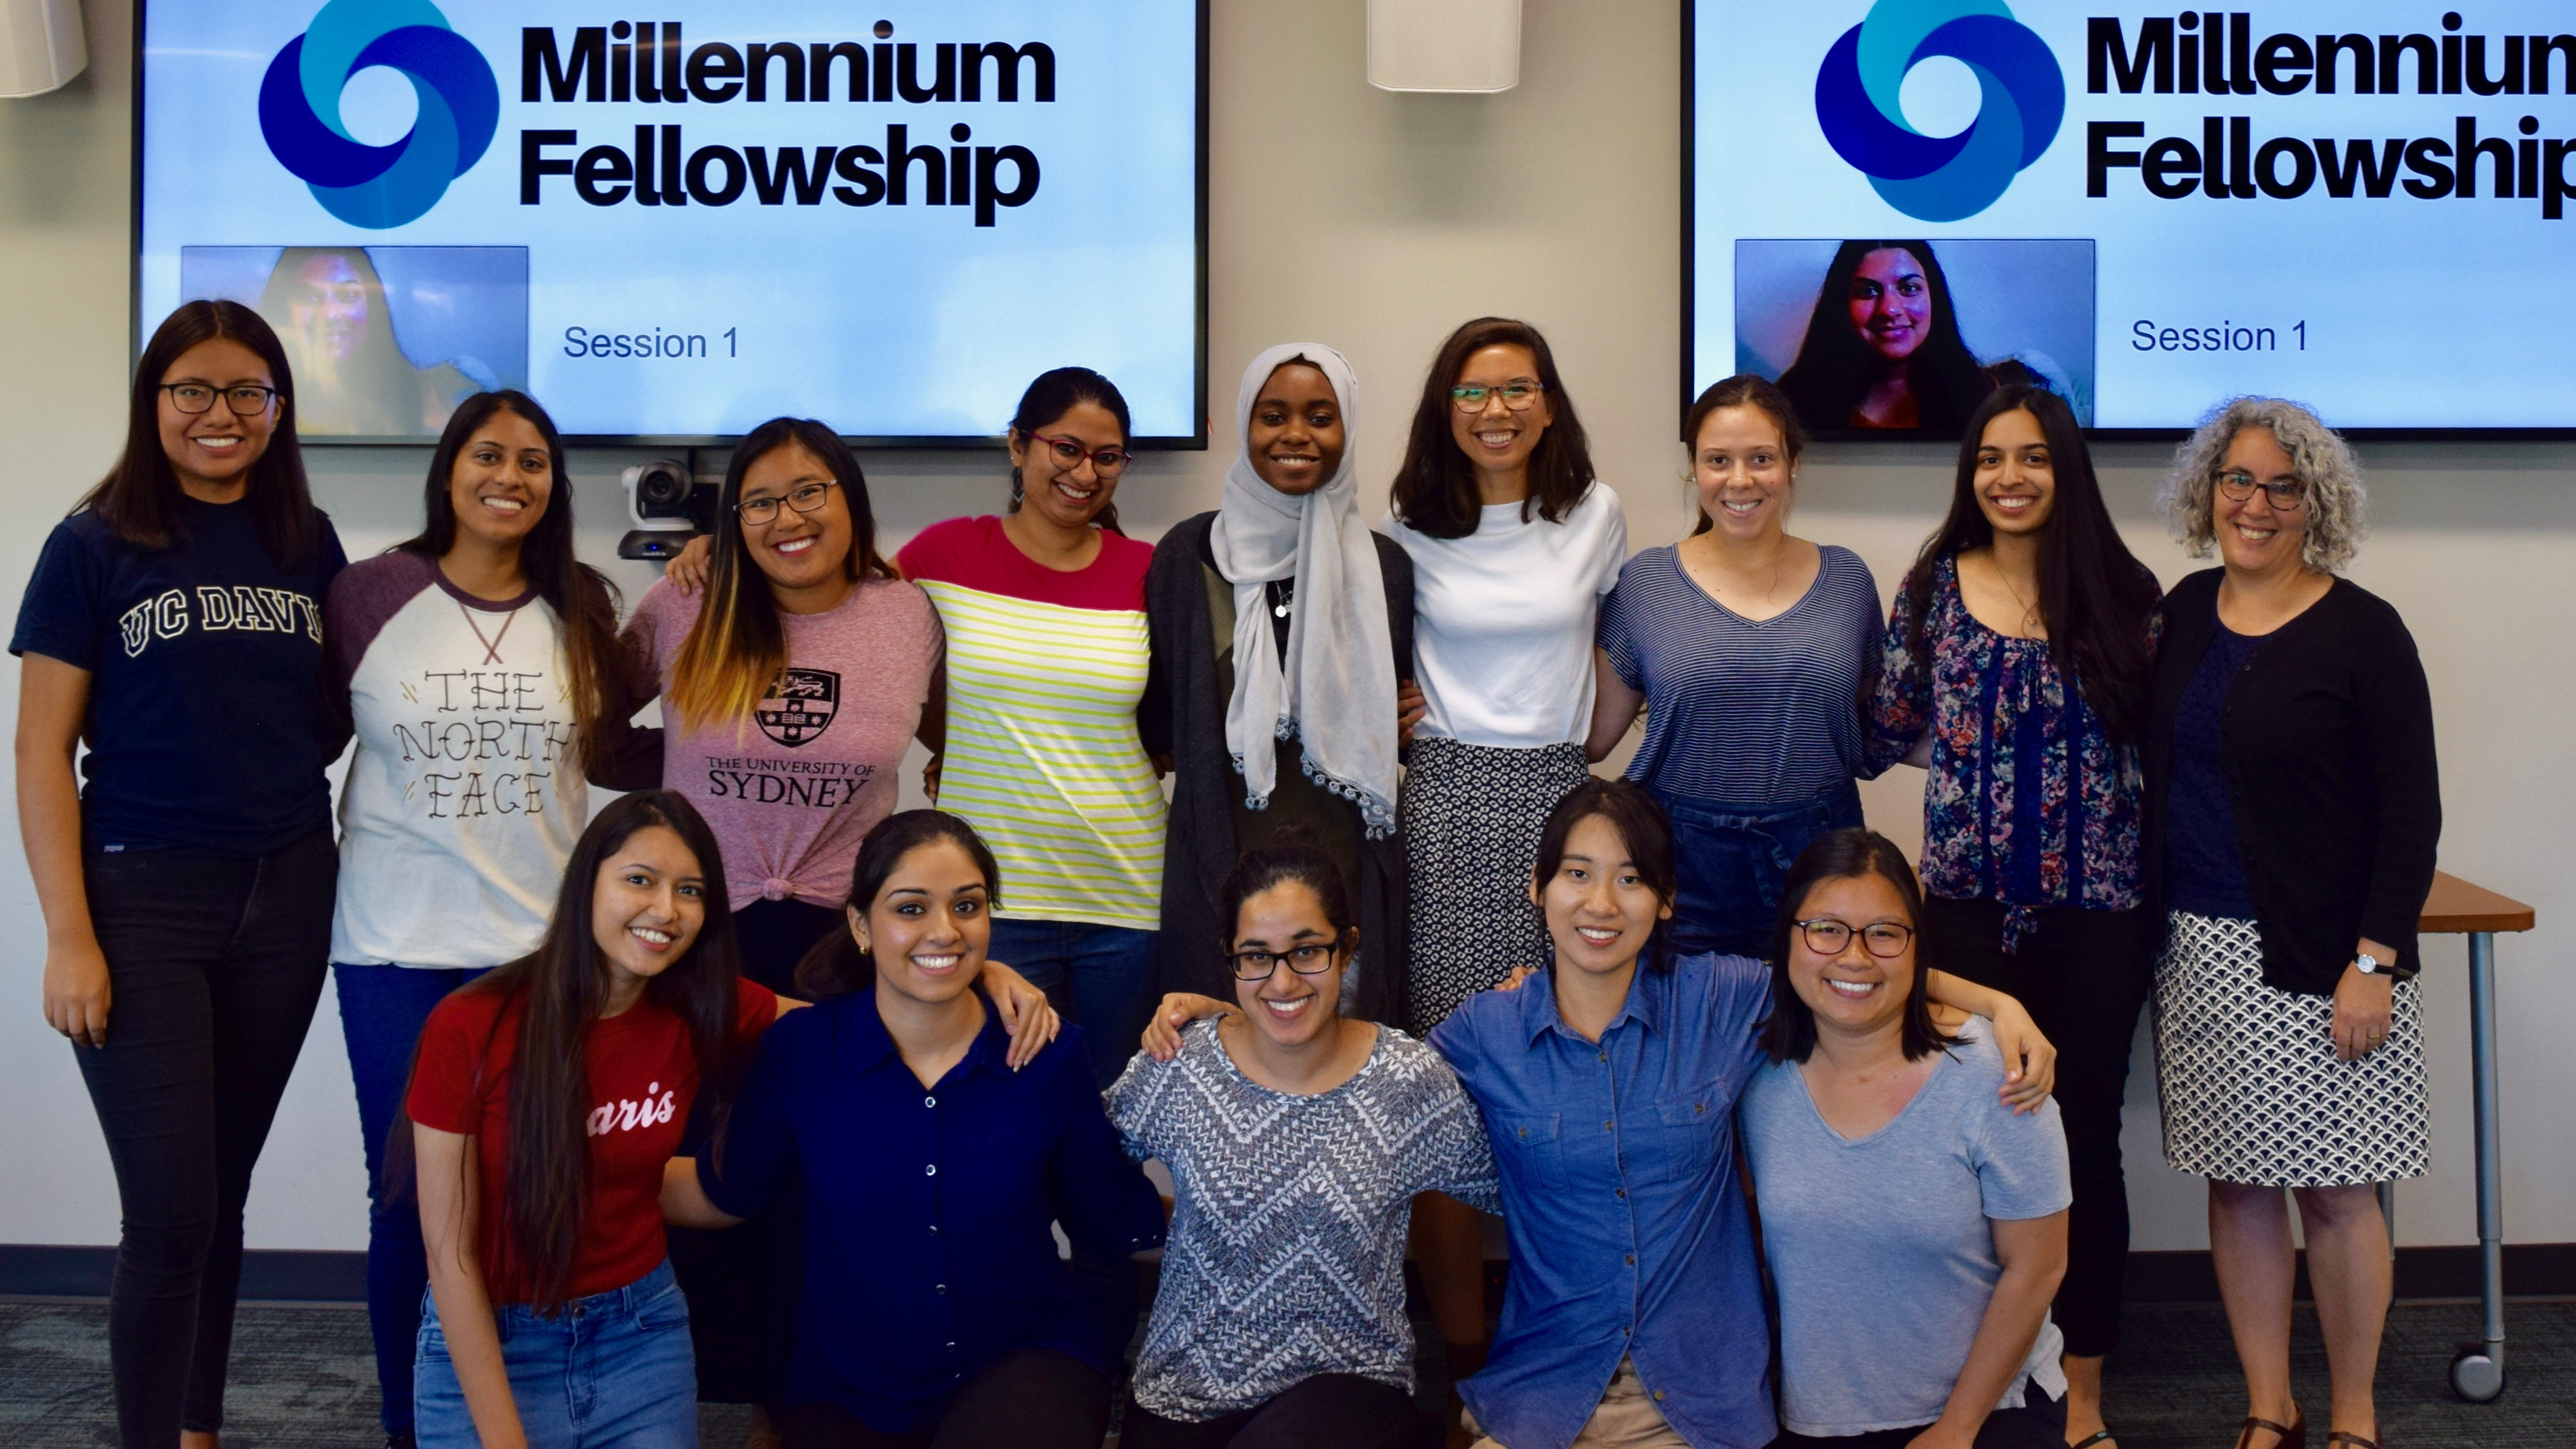 Arteaga (left) and the 2018-19 UC Davis Millennium Fellows with Nancy Erbstein, associate vice provost of Global Education for All in Global Affairs and associate professor in residence in the School of Education (right).